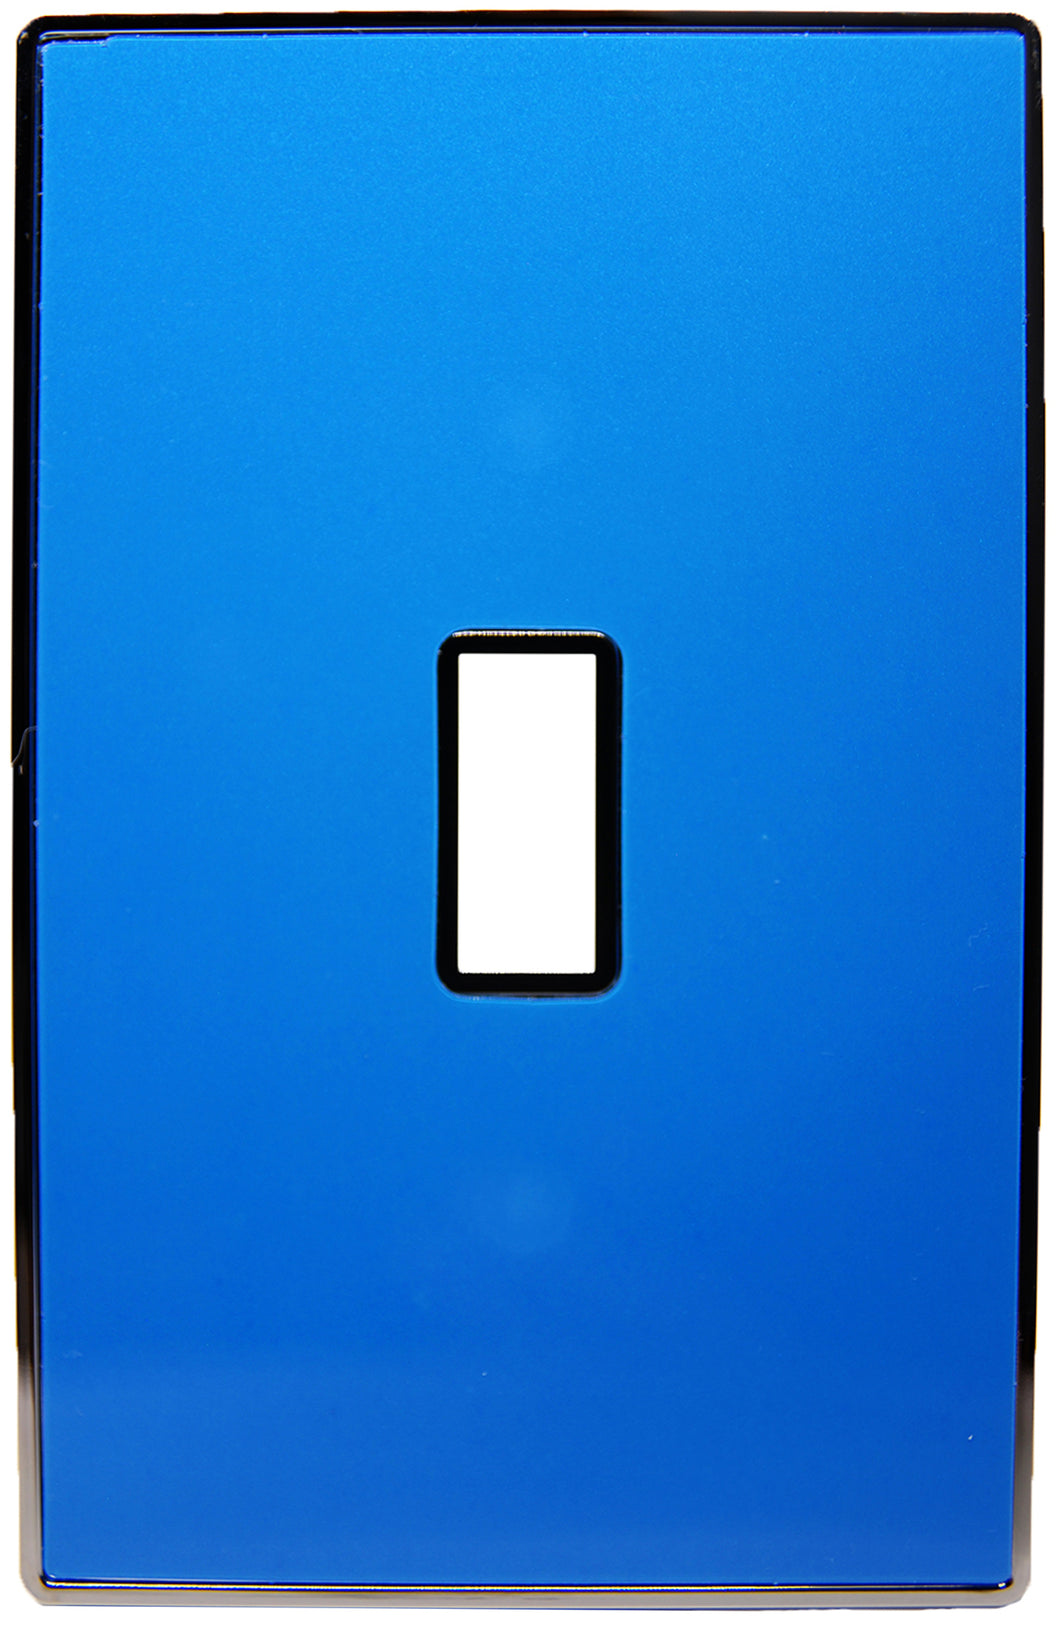 UC05 Light Blue Pearl/ 1-Gang Toggle Cover & Chrome Frame